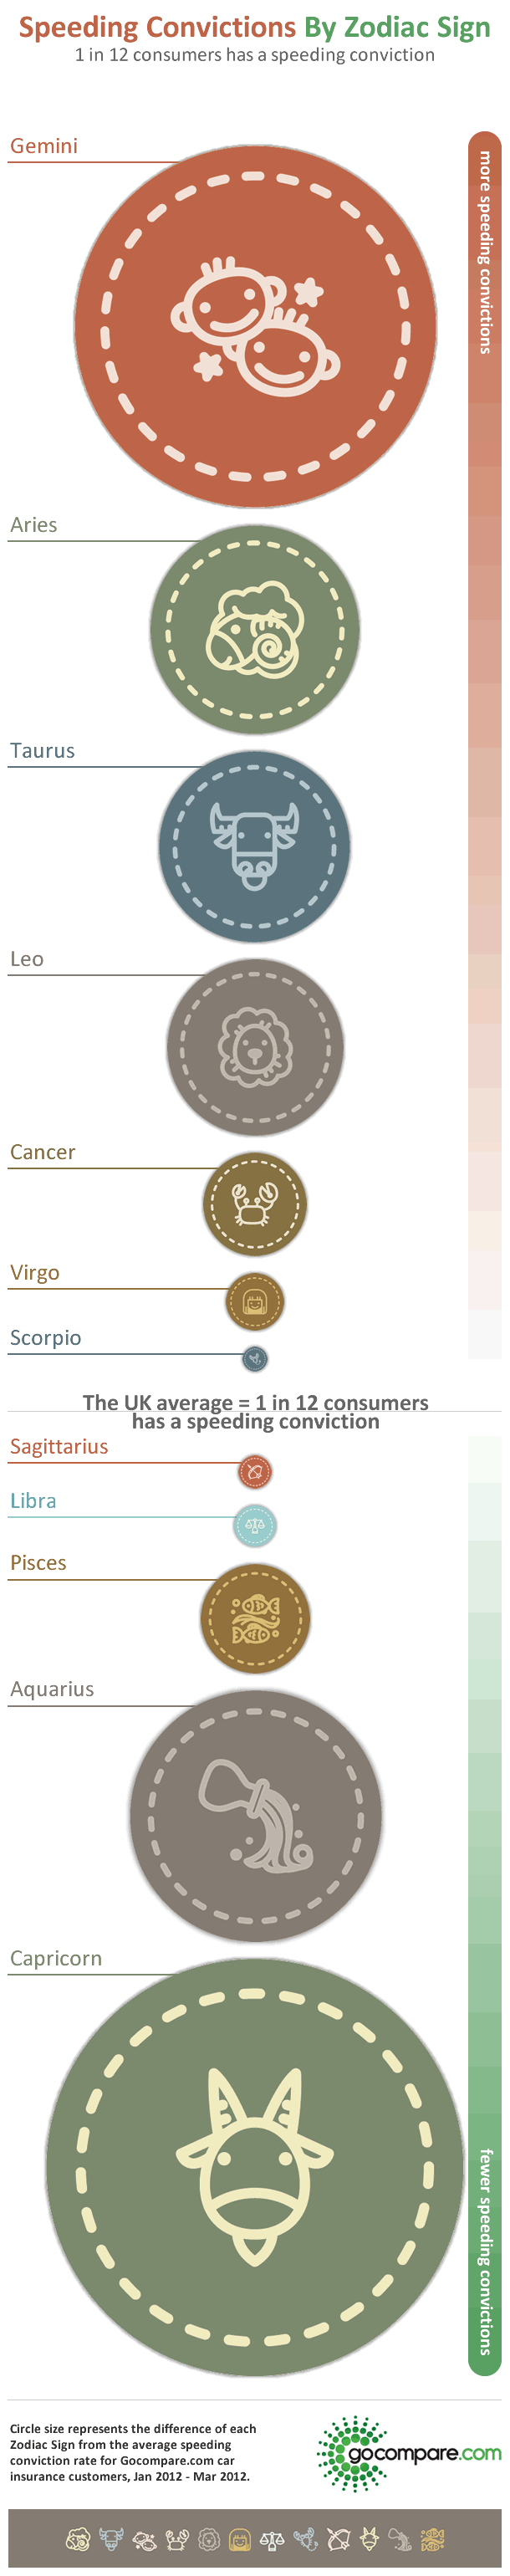 Zodiac signs infographic